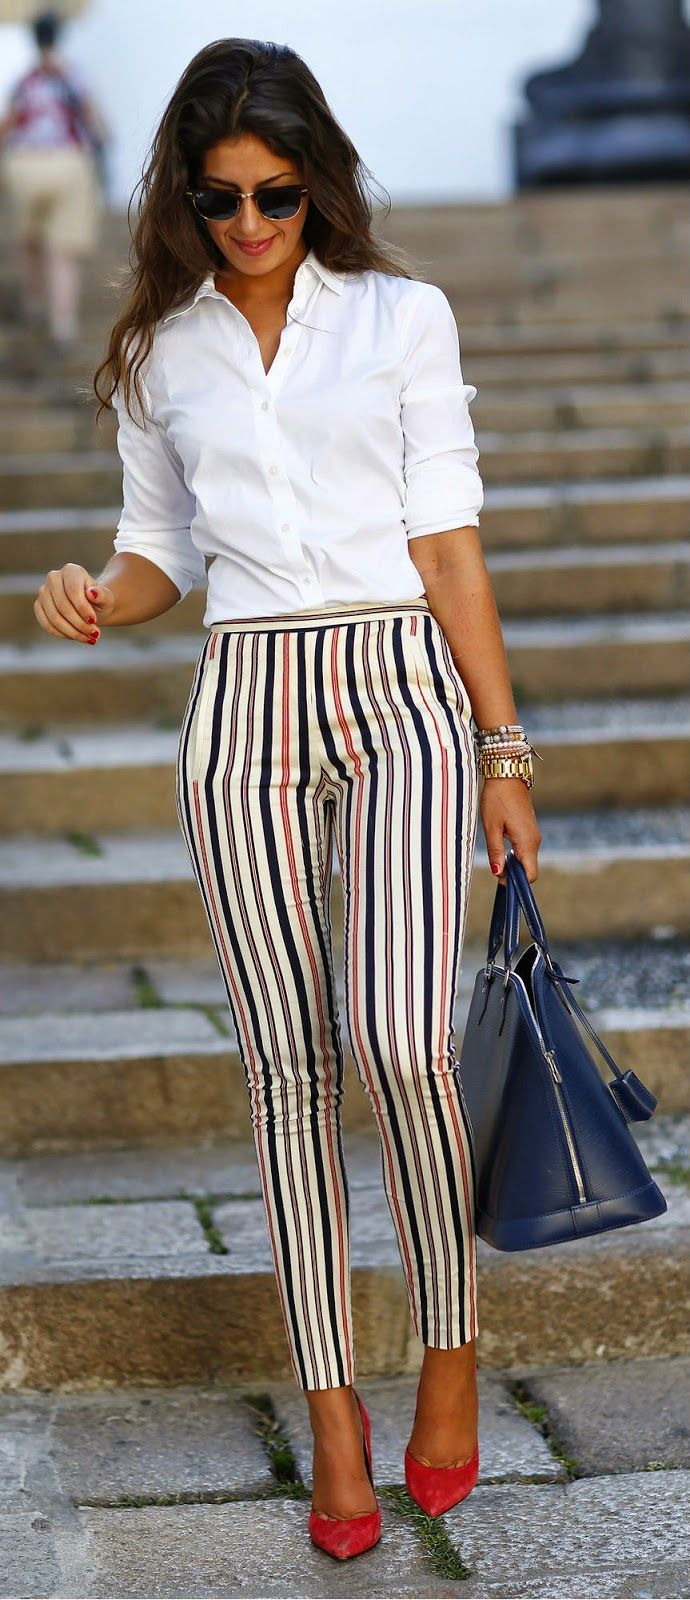 bf198dad10 White shirt + Striped pants | My style - haves, want and wish list ...